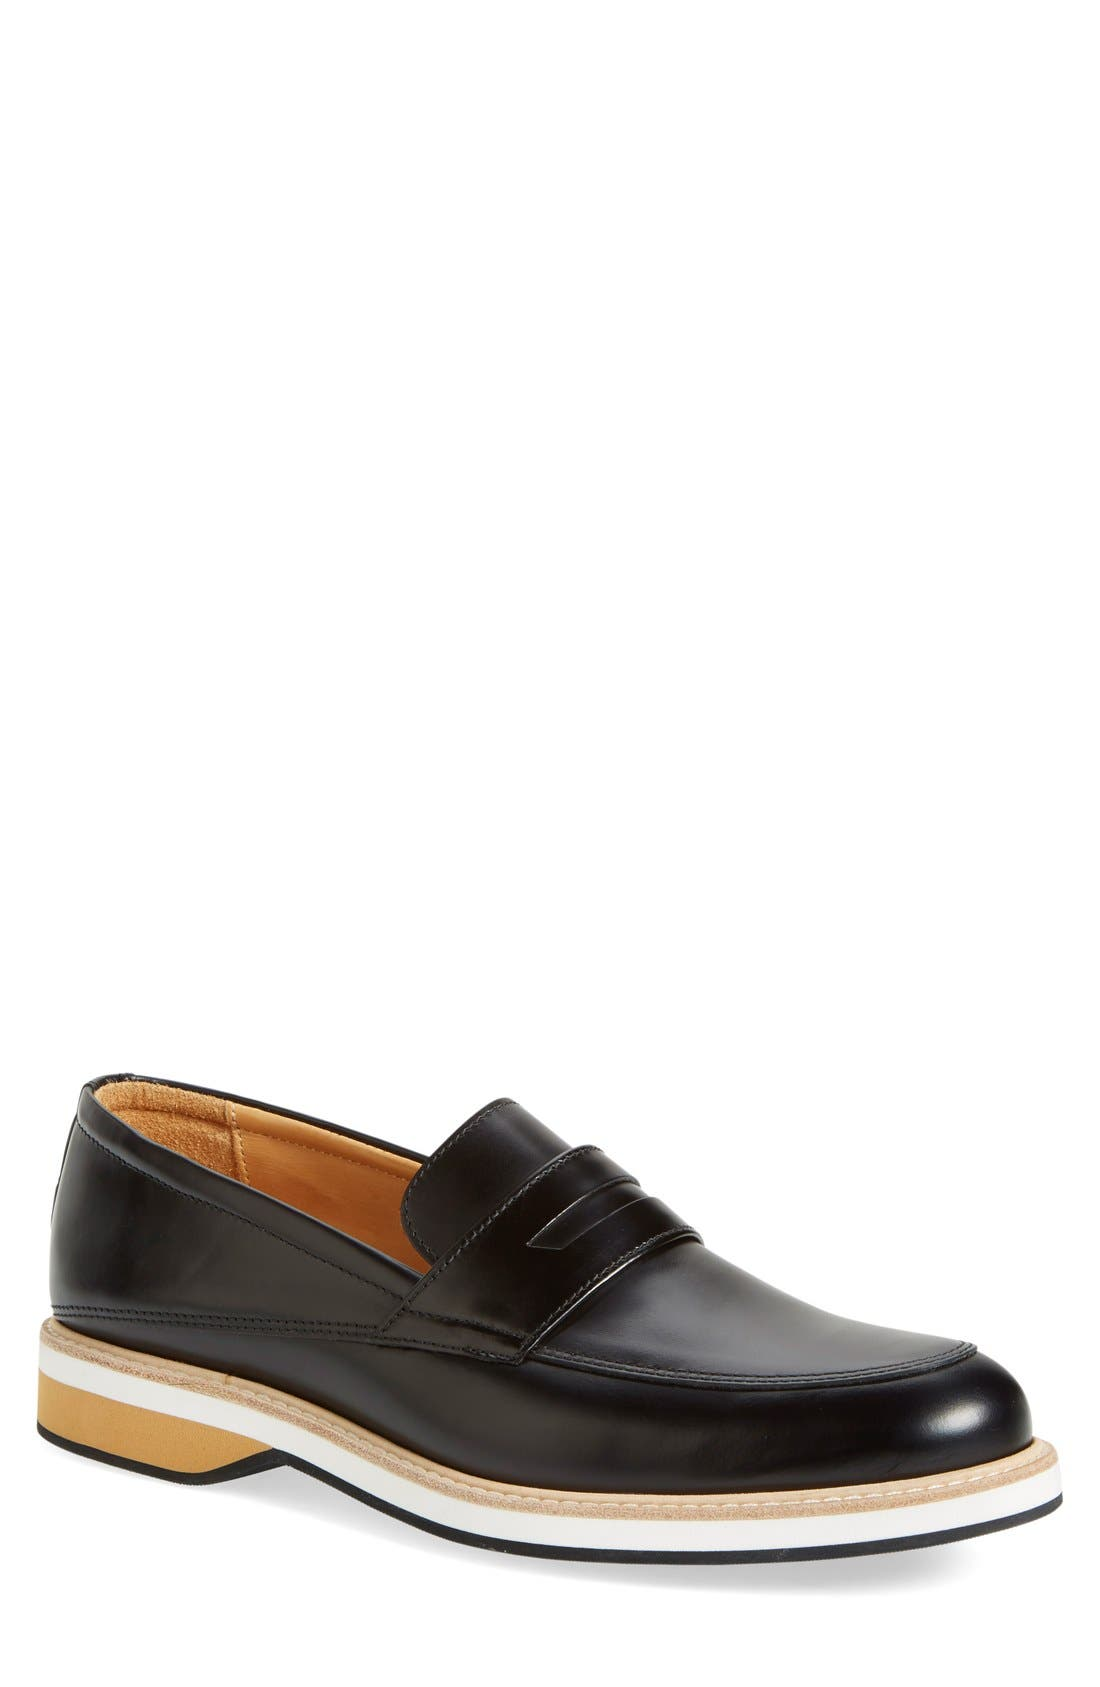 'Marcos' Loafer,                             Main thumbnail 1, color,                             Black Leather